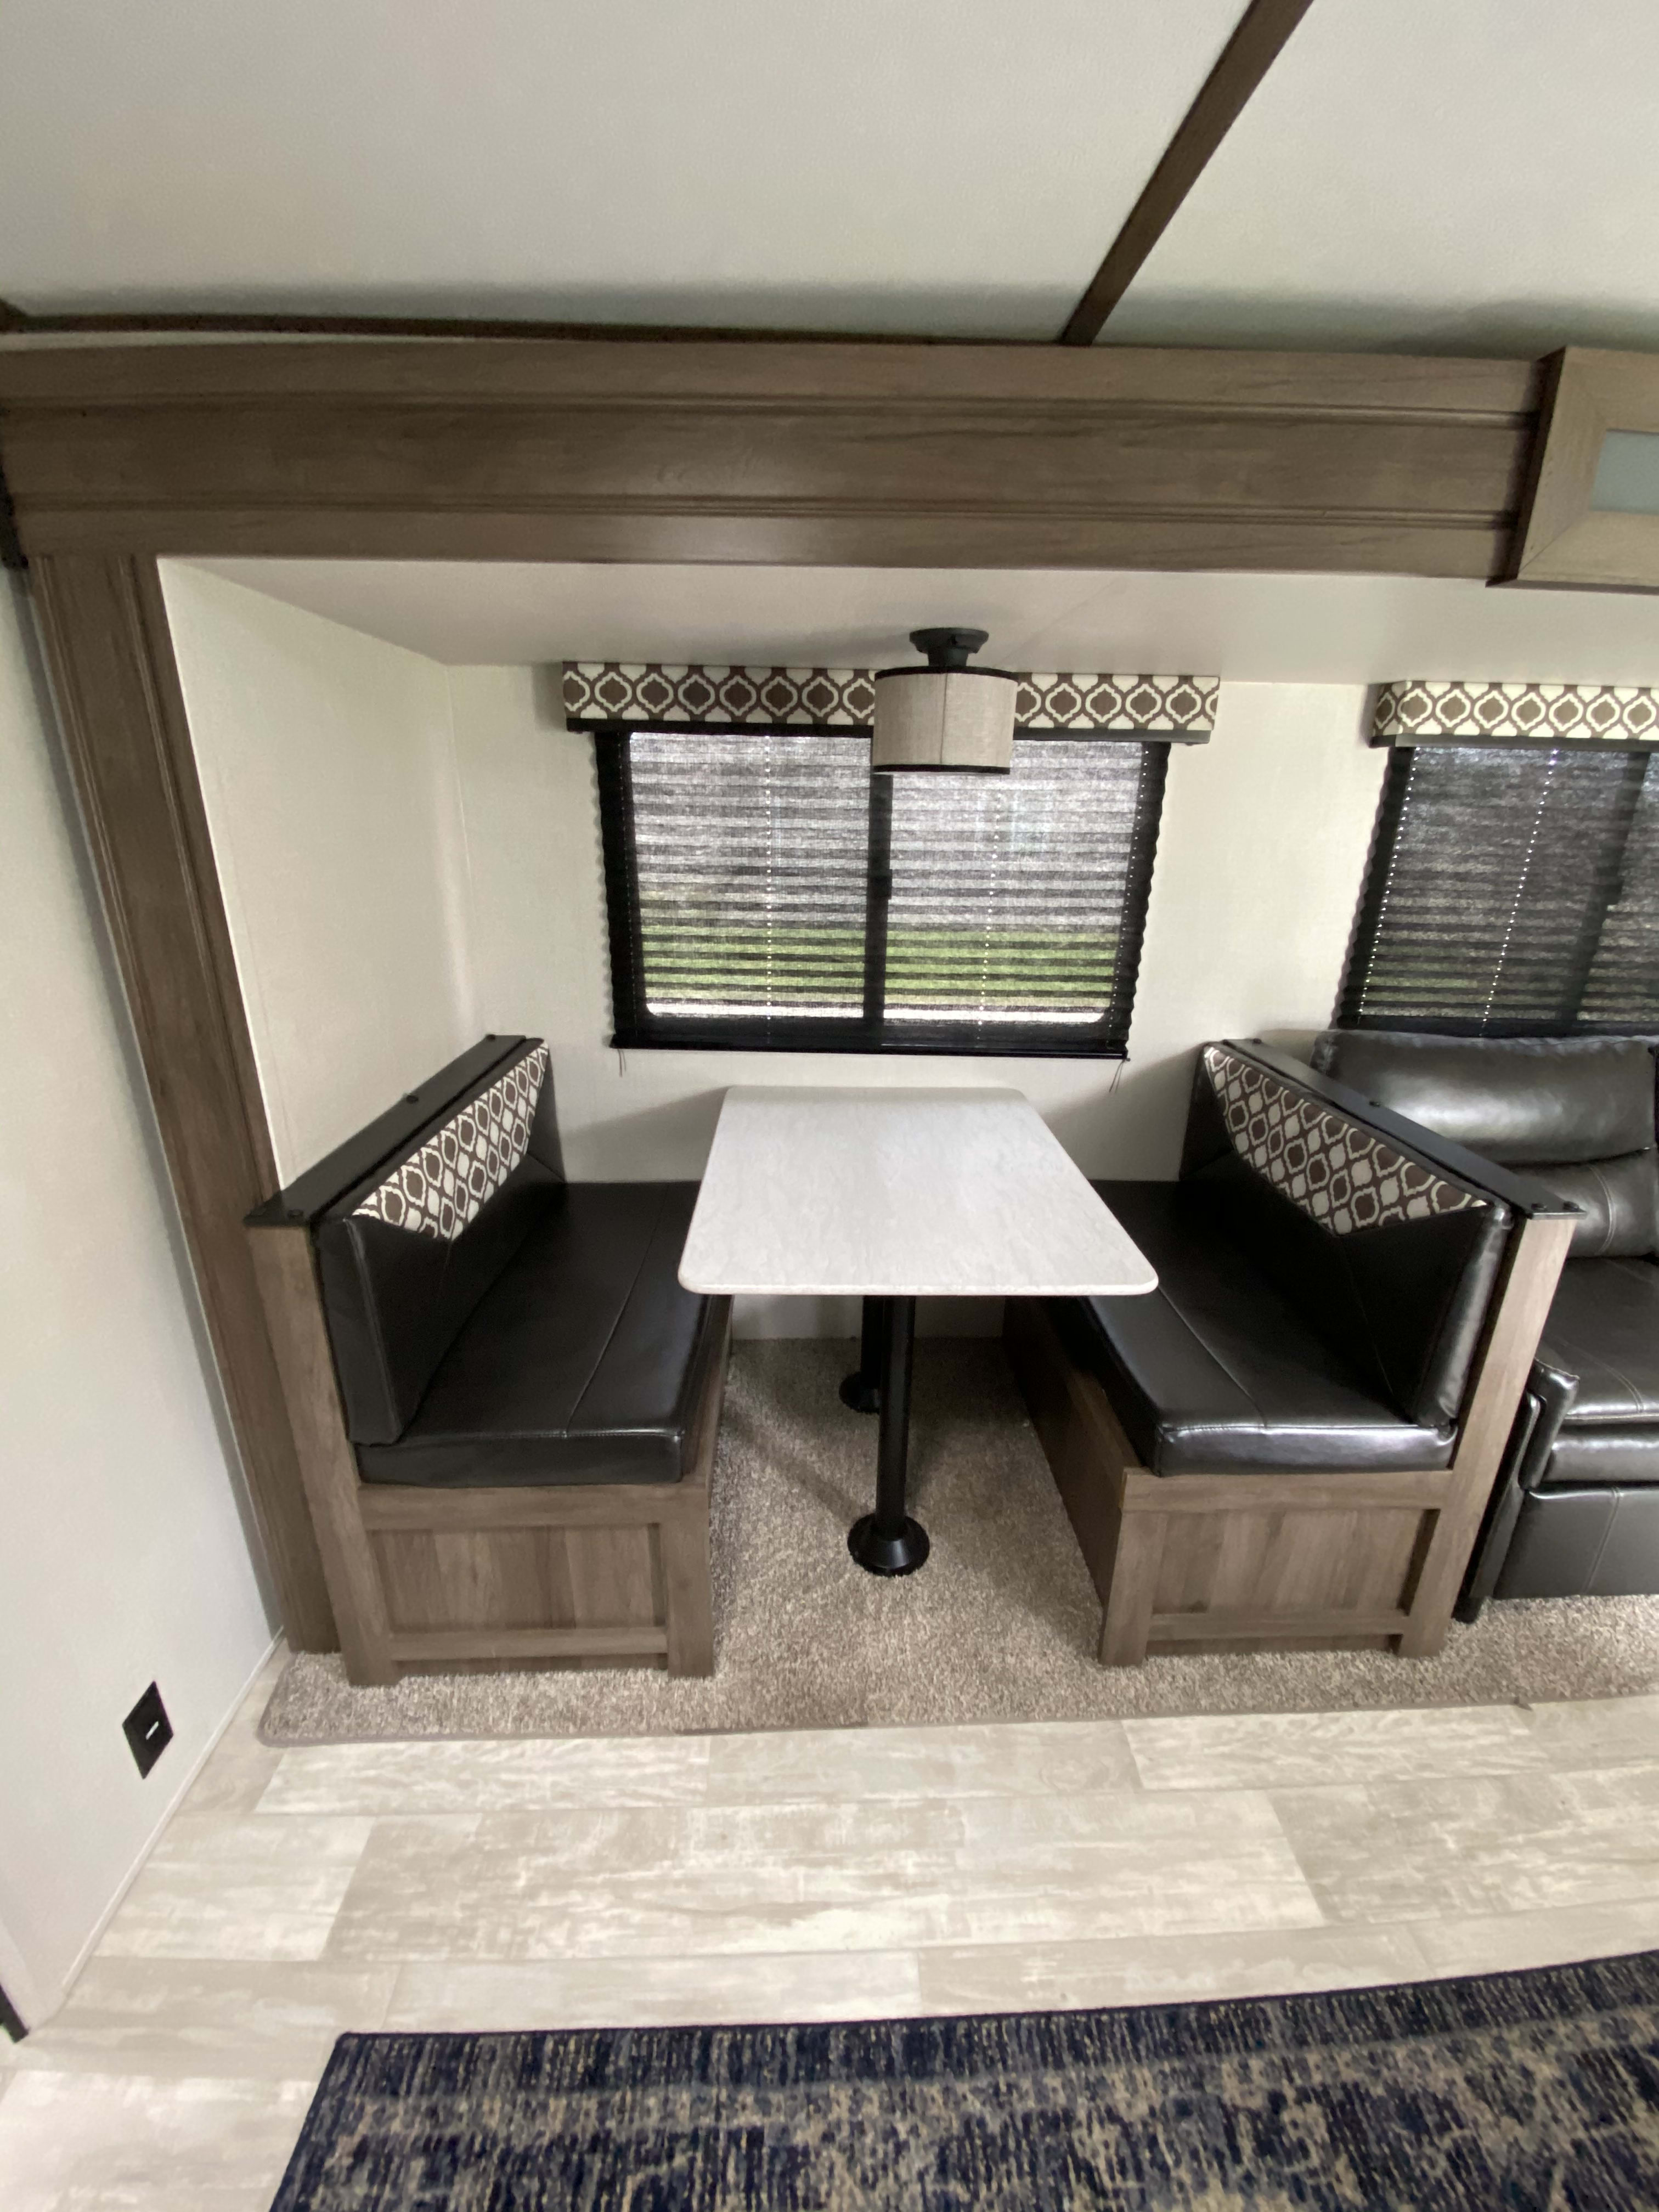 Dinette, fits 4 comfortably, also turns into bed. Forest River Tracer 2020